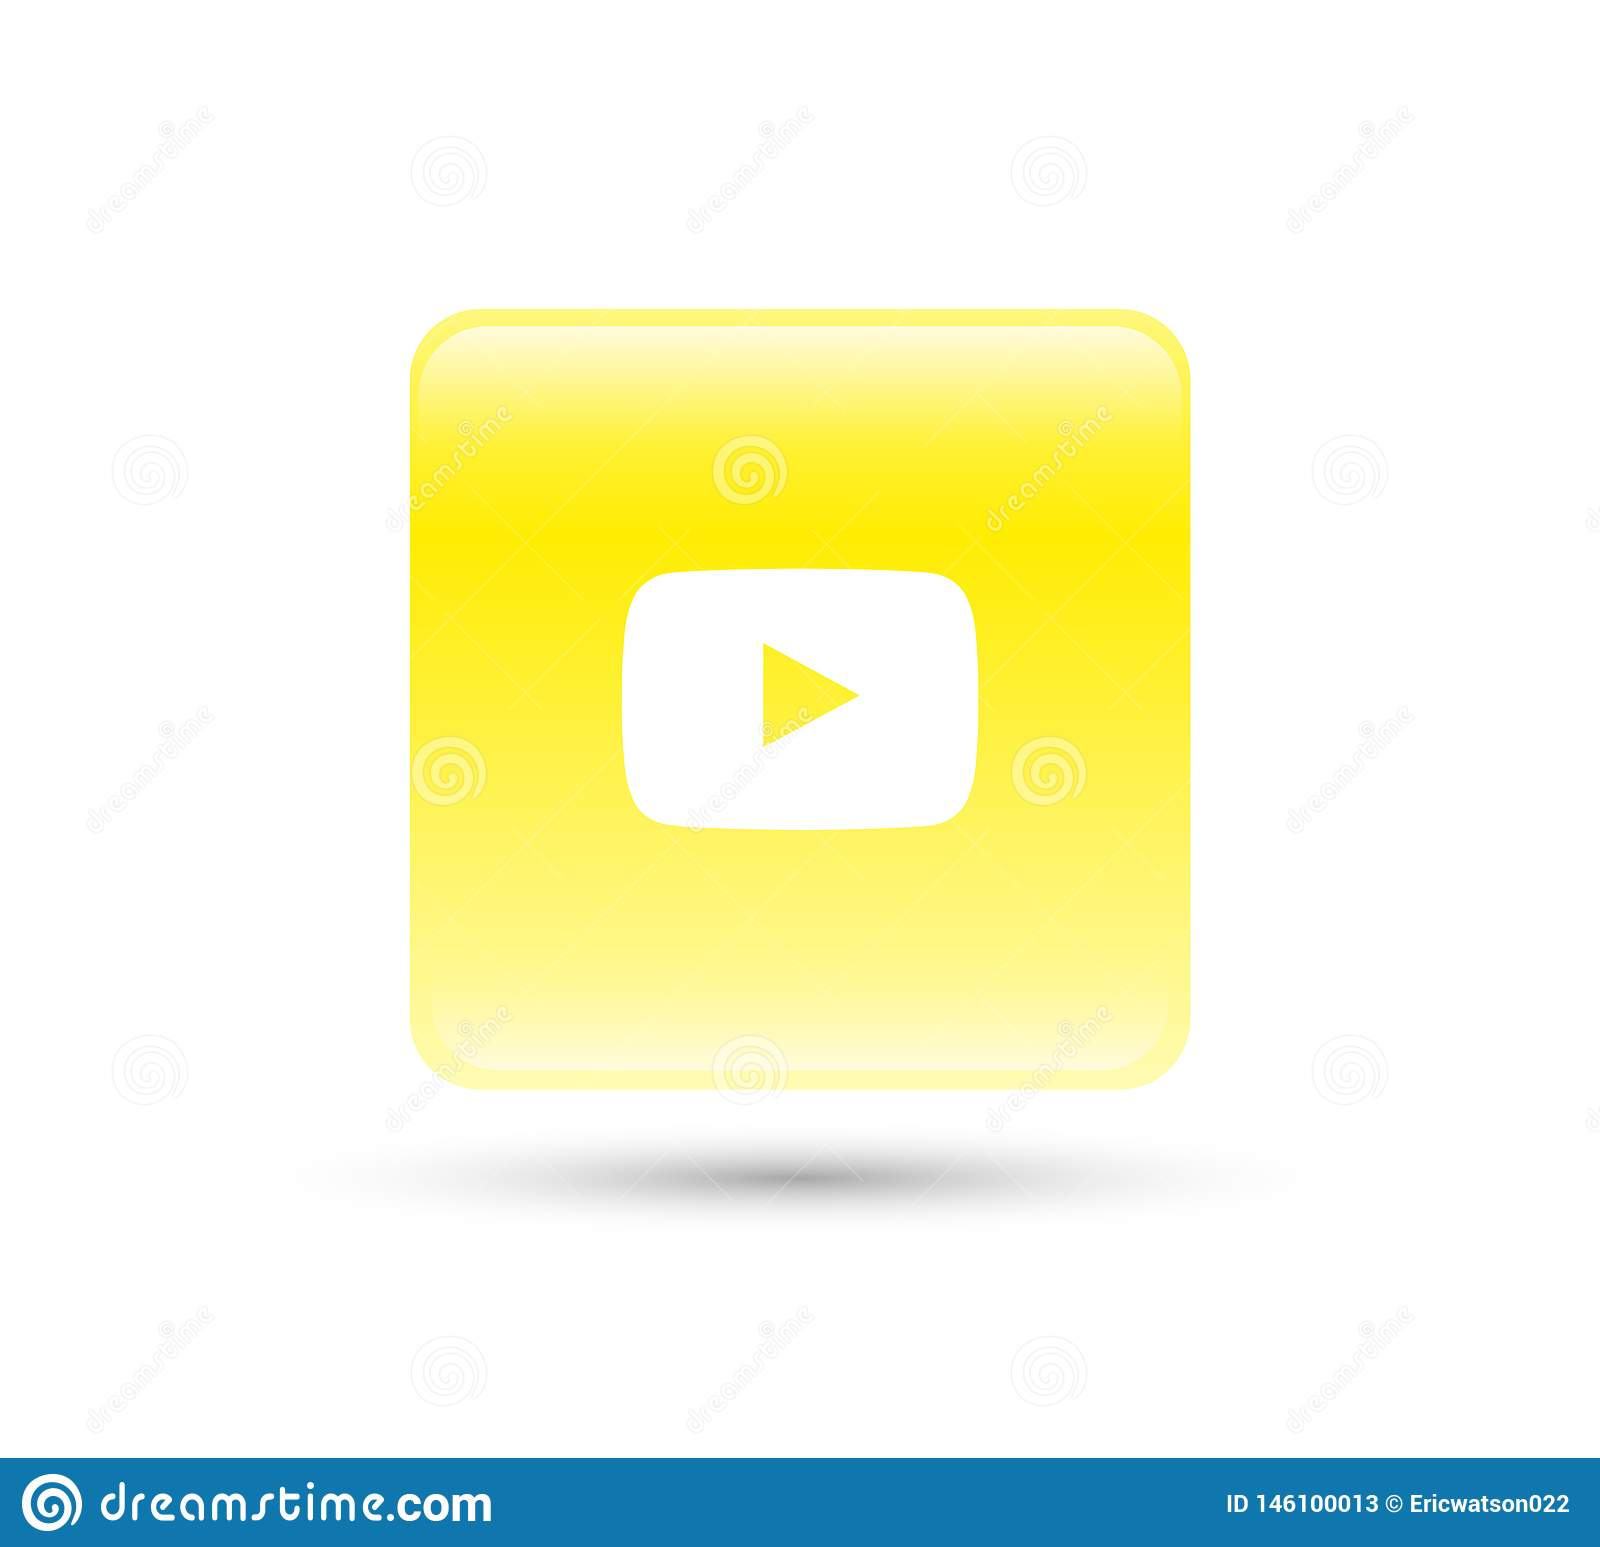 YouTube Logo Icon Vector With Yellow Gradient Design